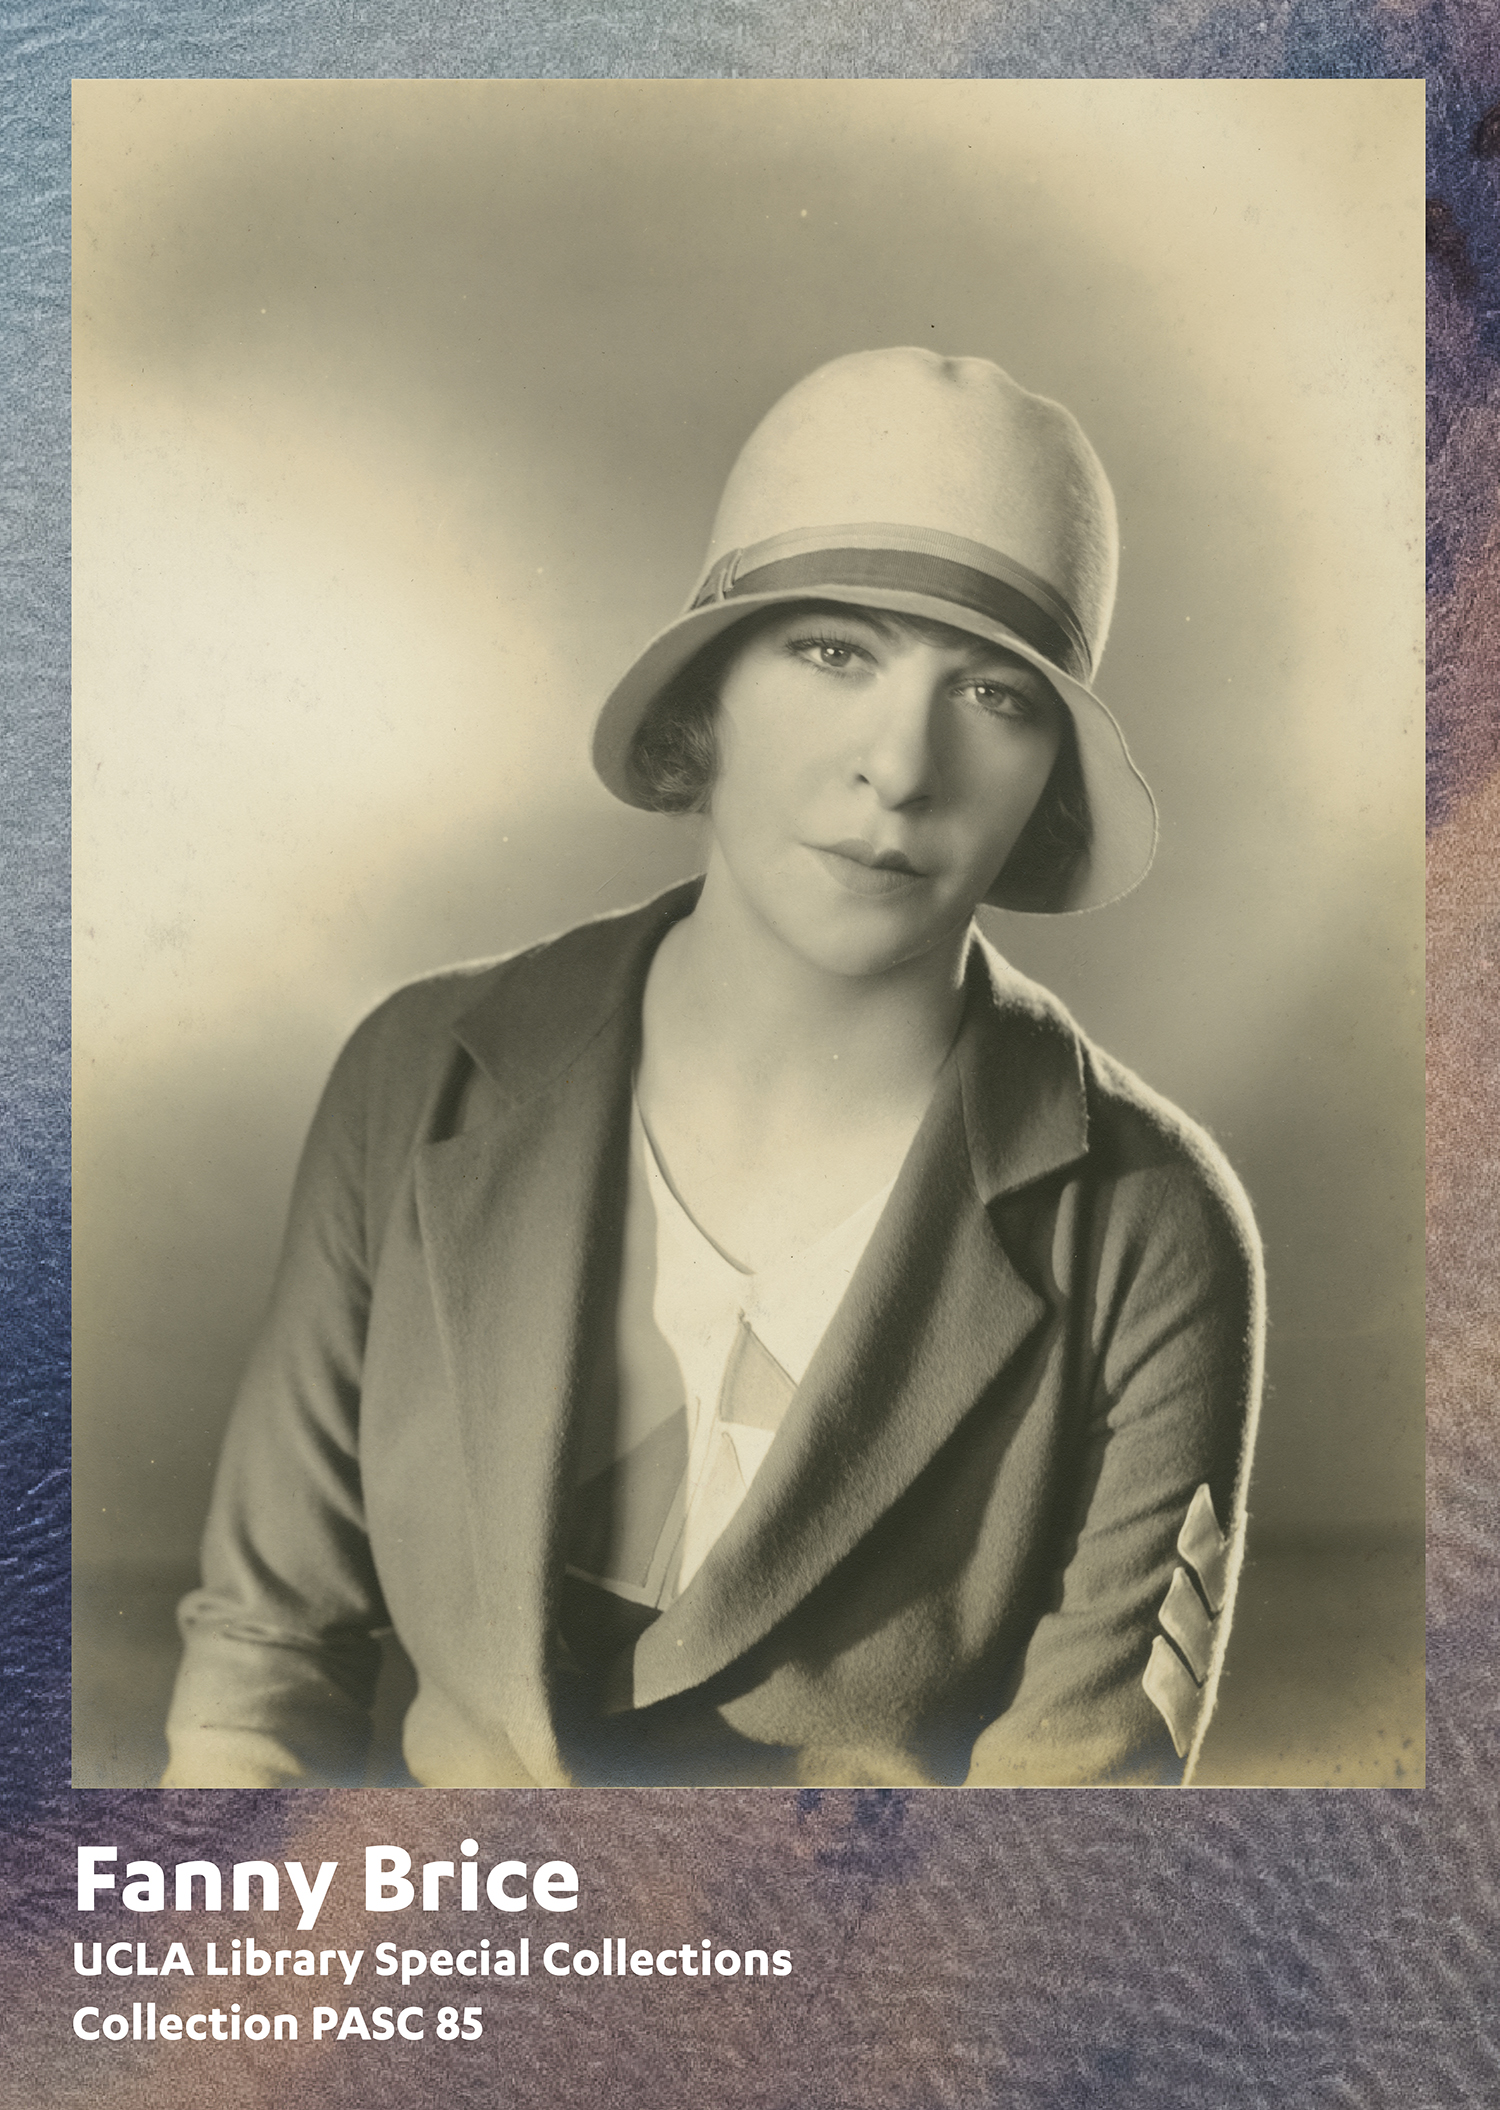 Fanny Brice, UCLA Library Special Collections, Collection PASC 85